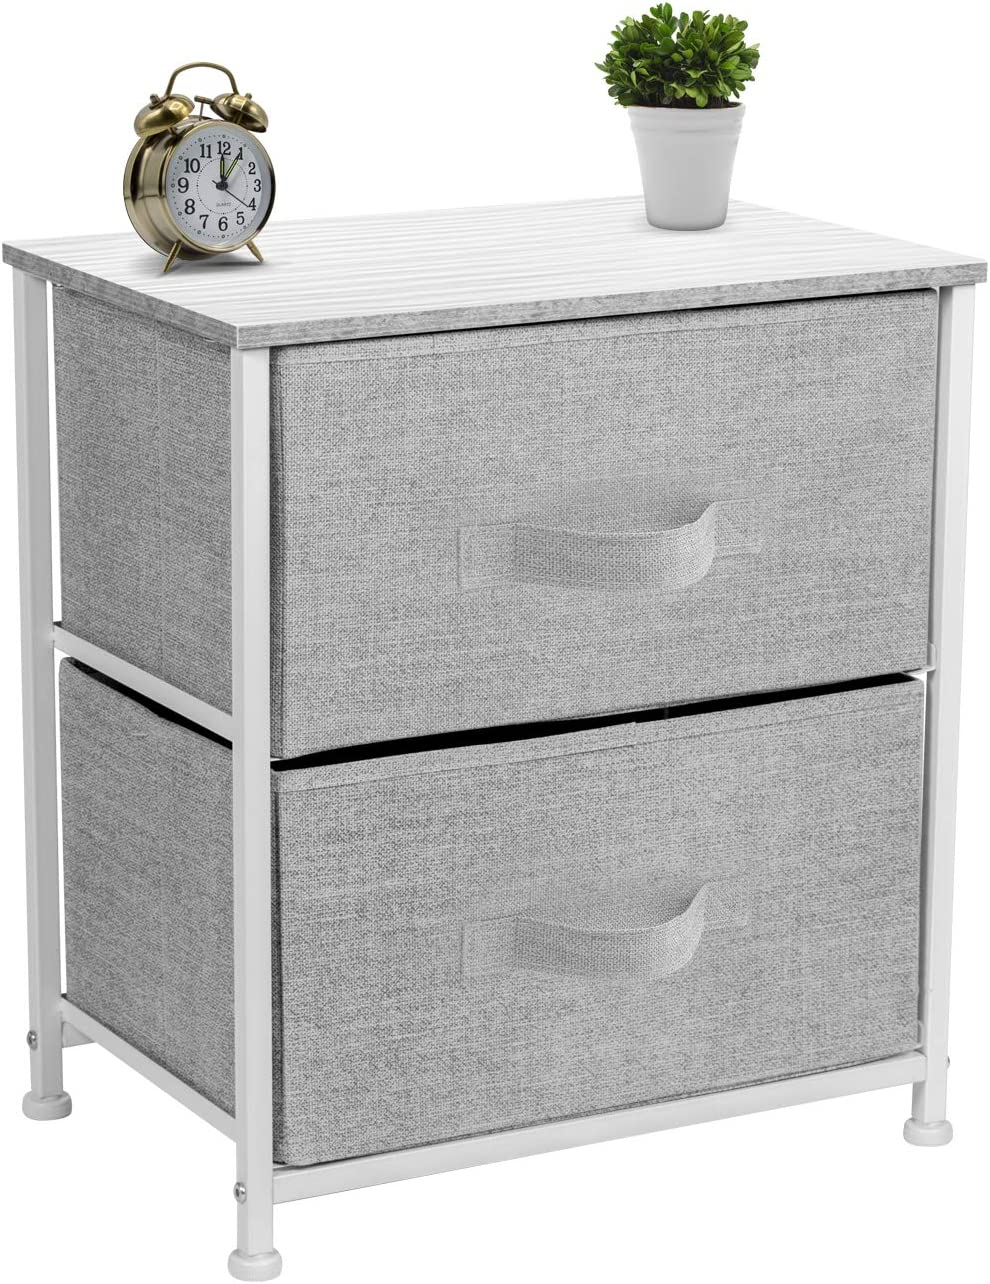 Sorbus Nightstand with 2 Drawers – Bedside Furniture Night Stand End Table Dresser for Home, Bedroom Accessories, Office, College Dorm, Steel Frame, Wood Top, Easy Pull Fabric Bins White Gray